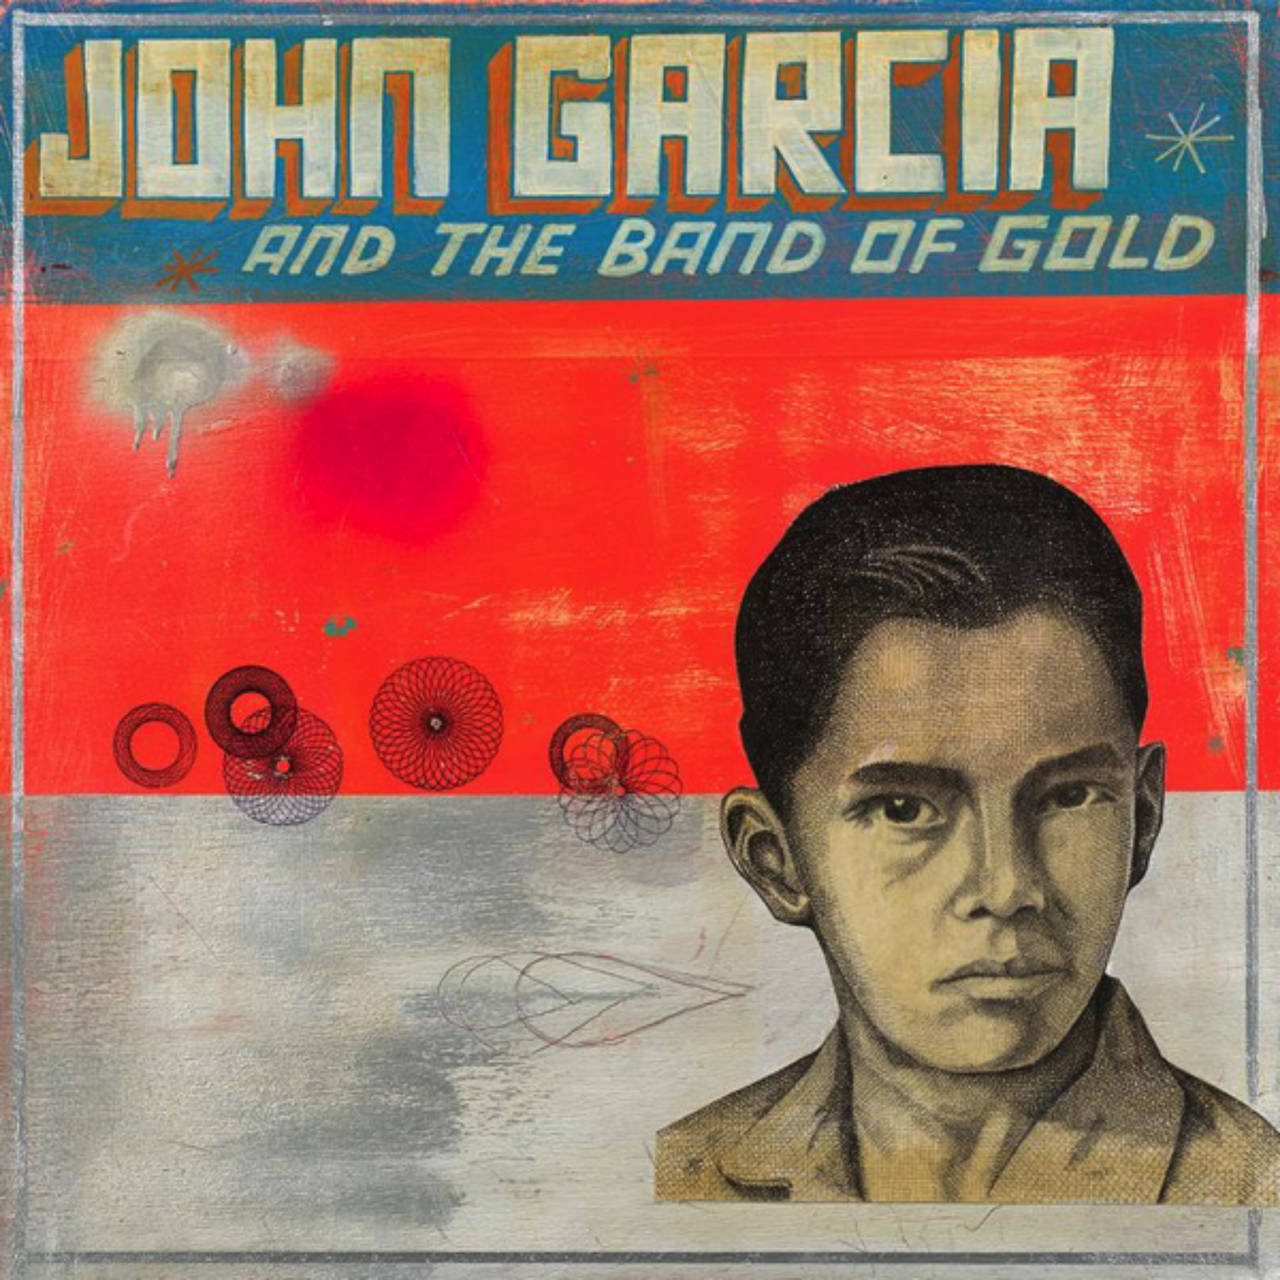 JOHN GARCIA『John Garcia And The Band Of Gold』